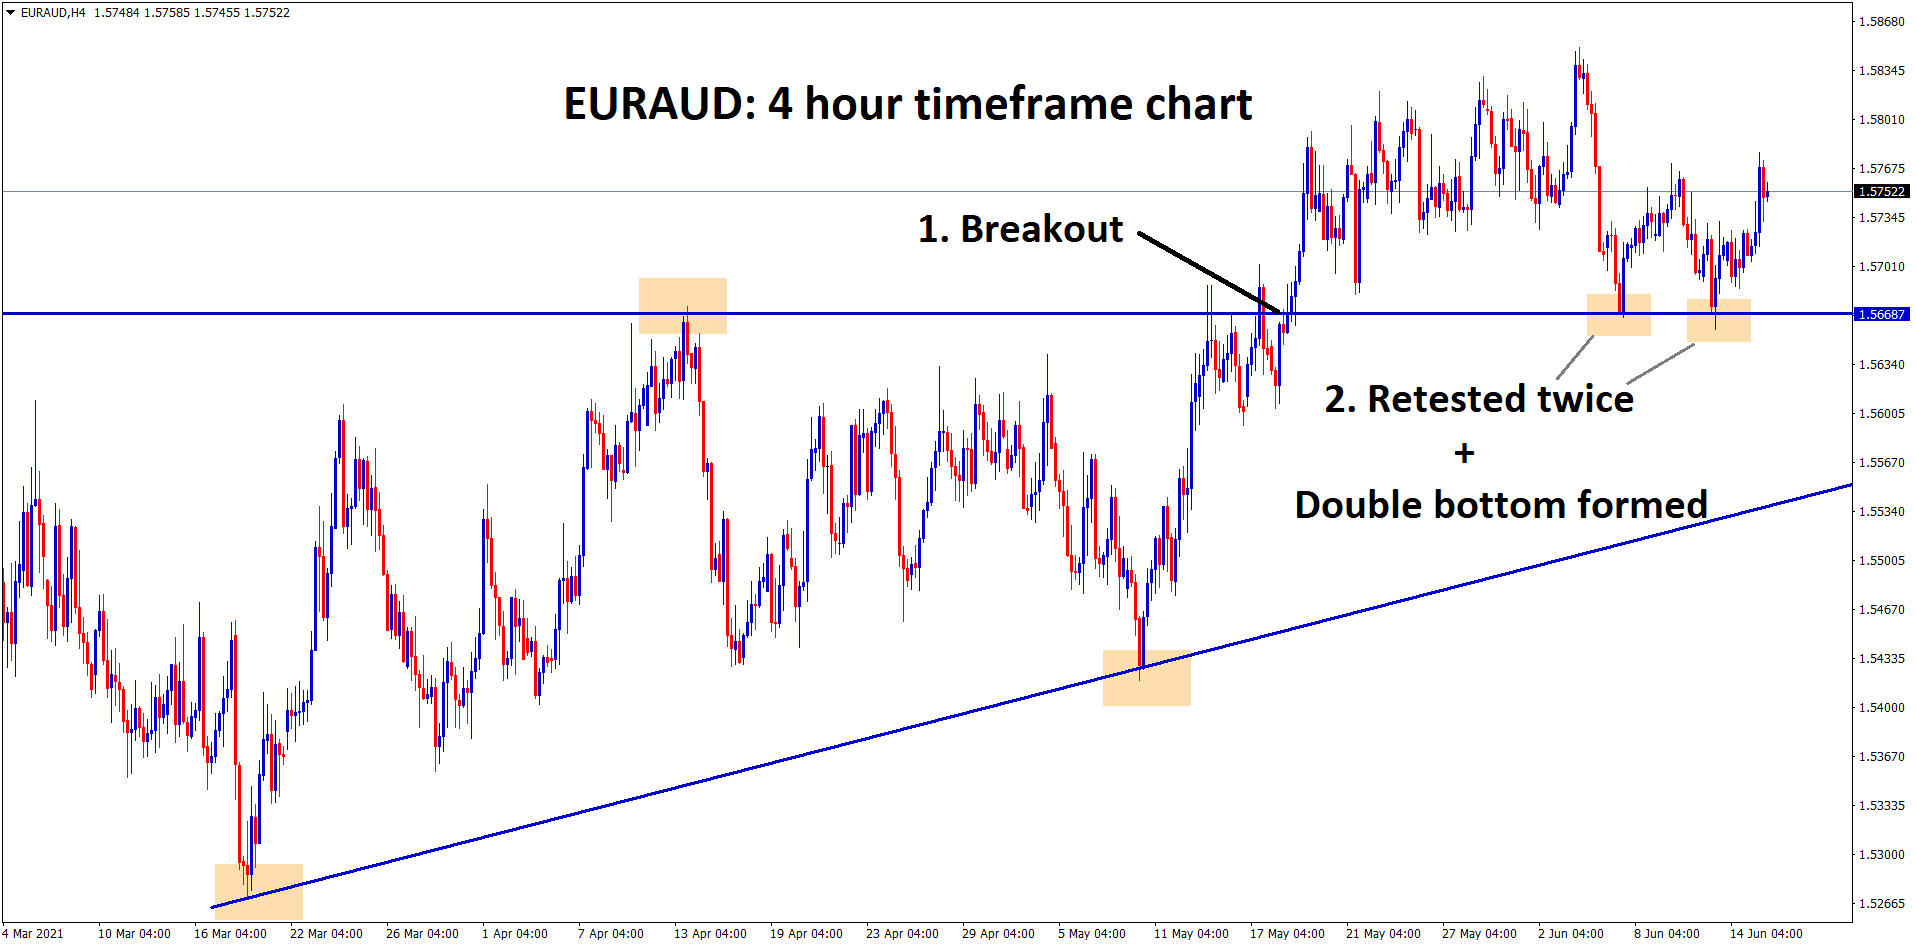 EURAUD has formed a double bottom after retesting the broken level of Ascending Triangle